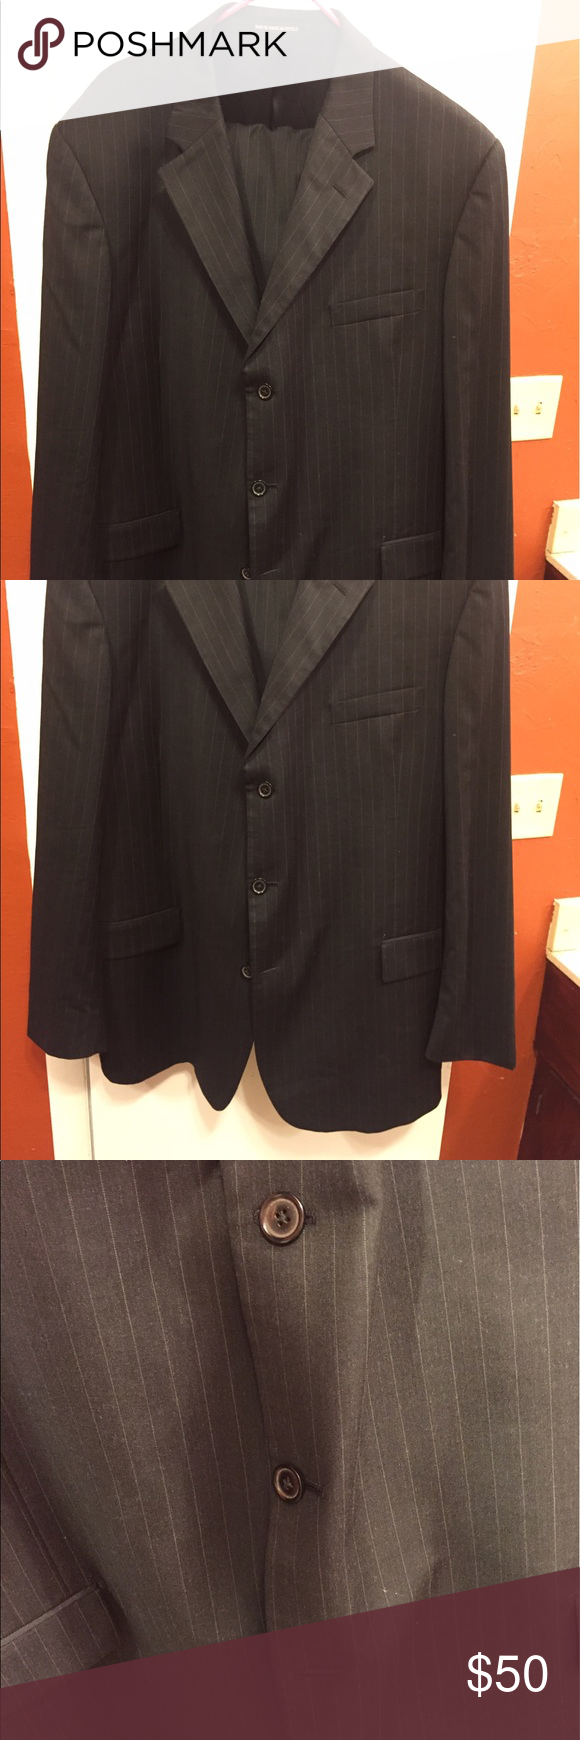 Men's 50 L suit Black striped  suit. 50L. Andrew Freeza Suits & Blazers Suits